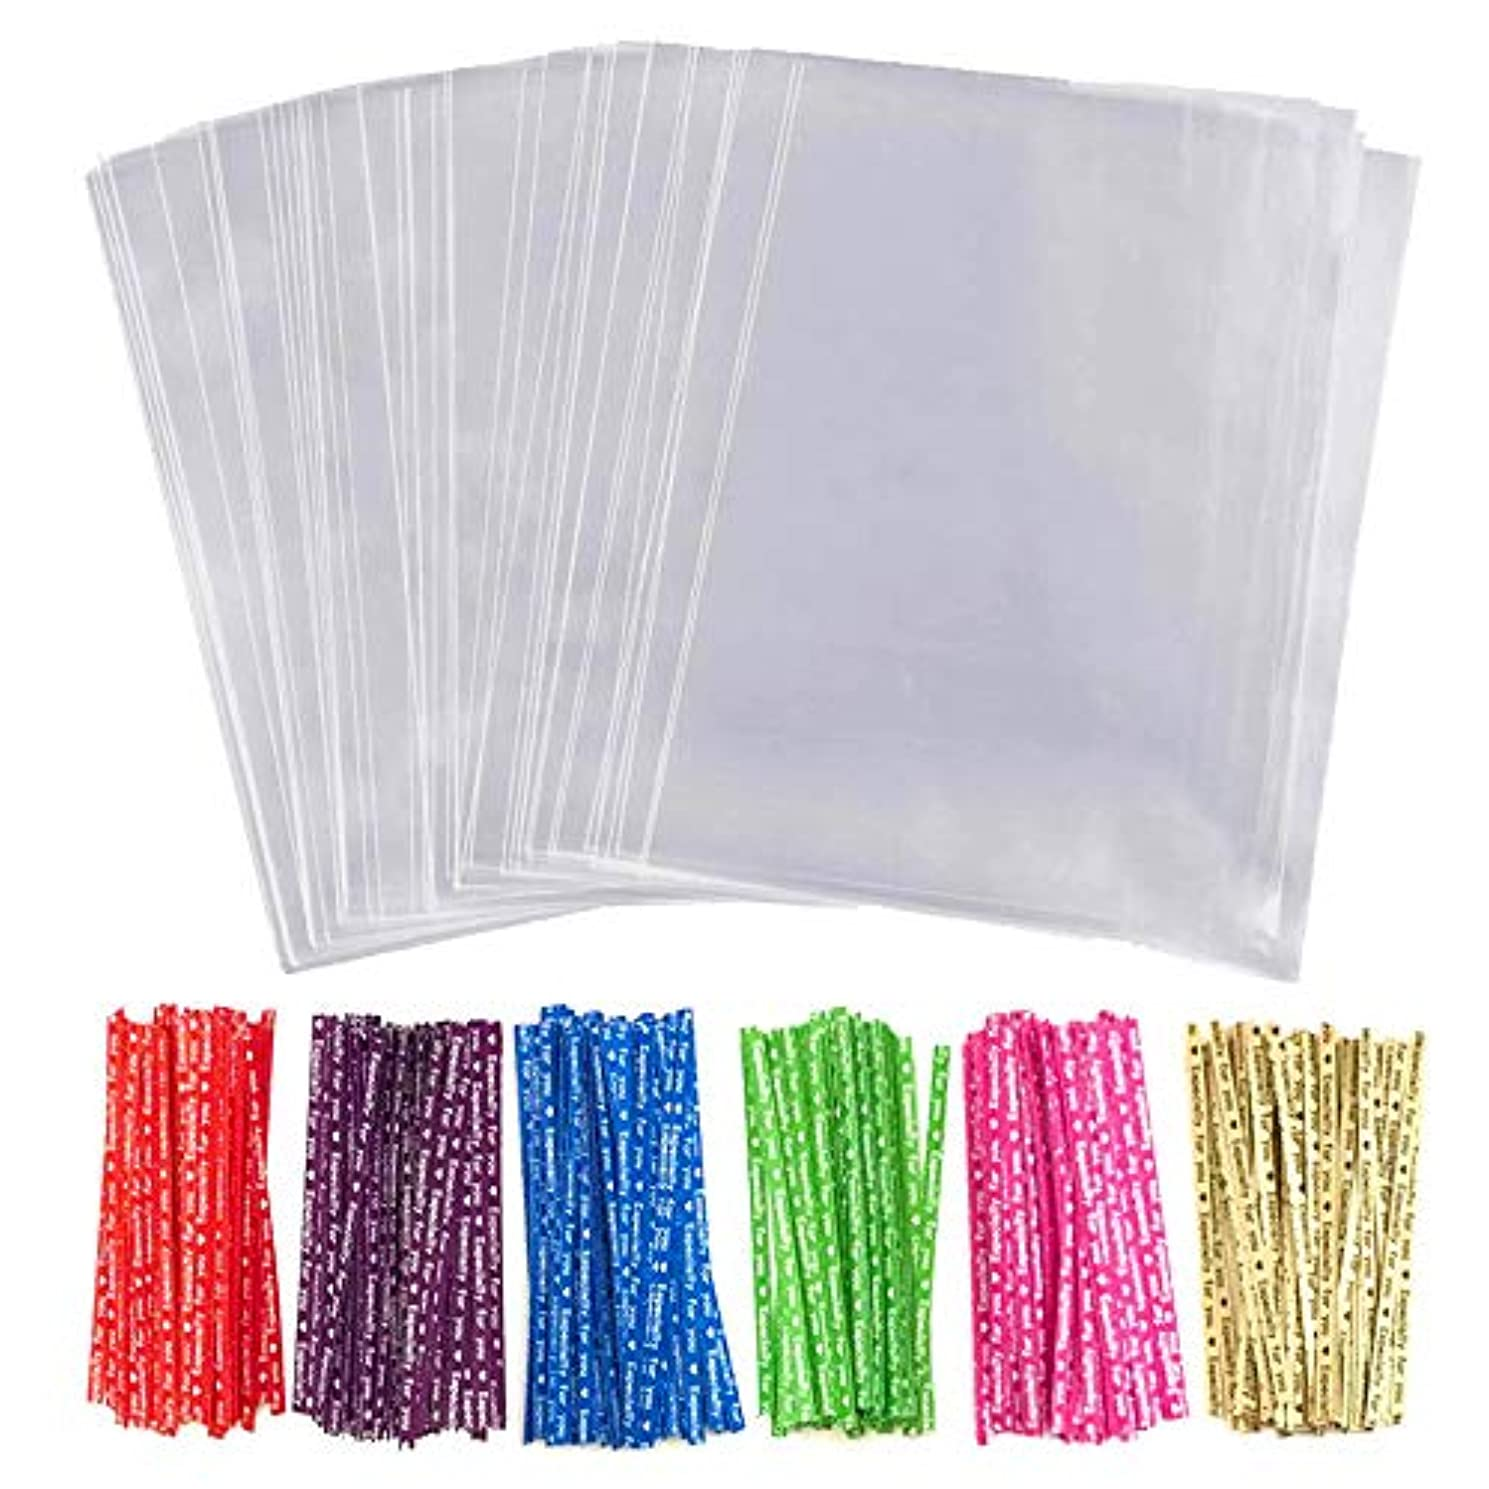 Cellophane Treat Bags 100 Pcs Clear Cello Candy Cookie Lollipop Bakery Dessert Cello Flat Goodie Bag with 100 Twist Ties Resealable 5